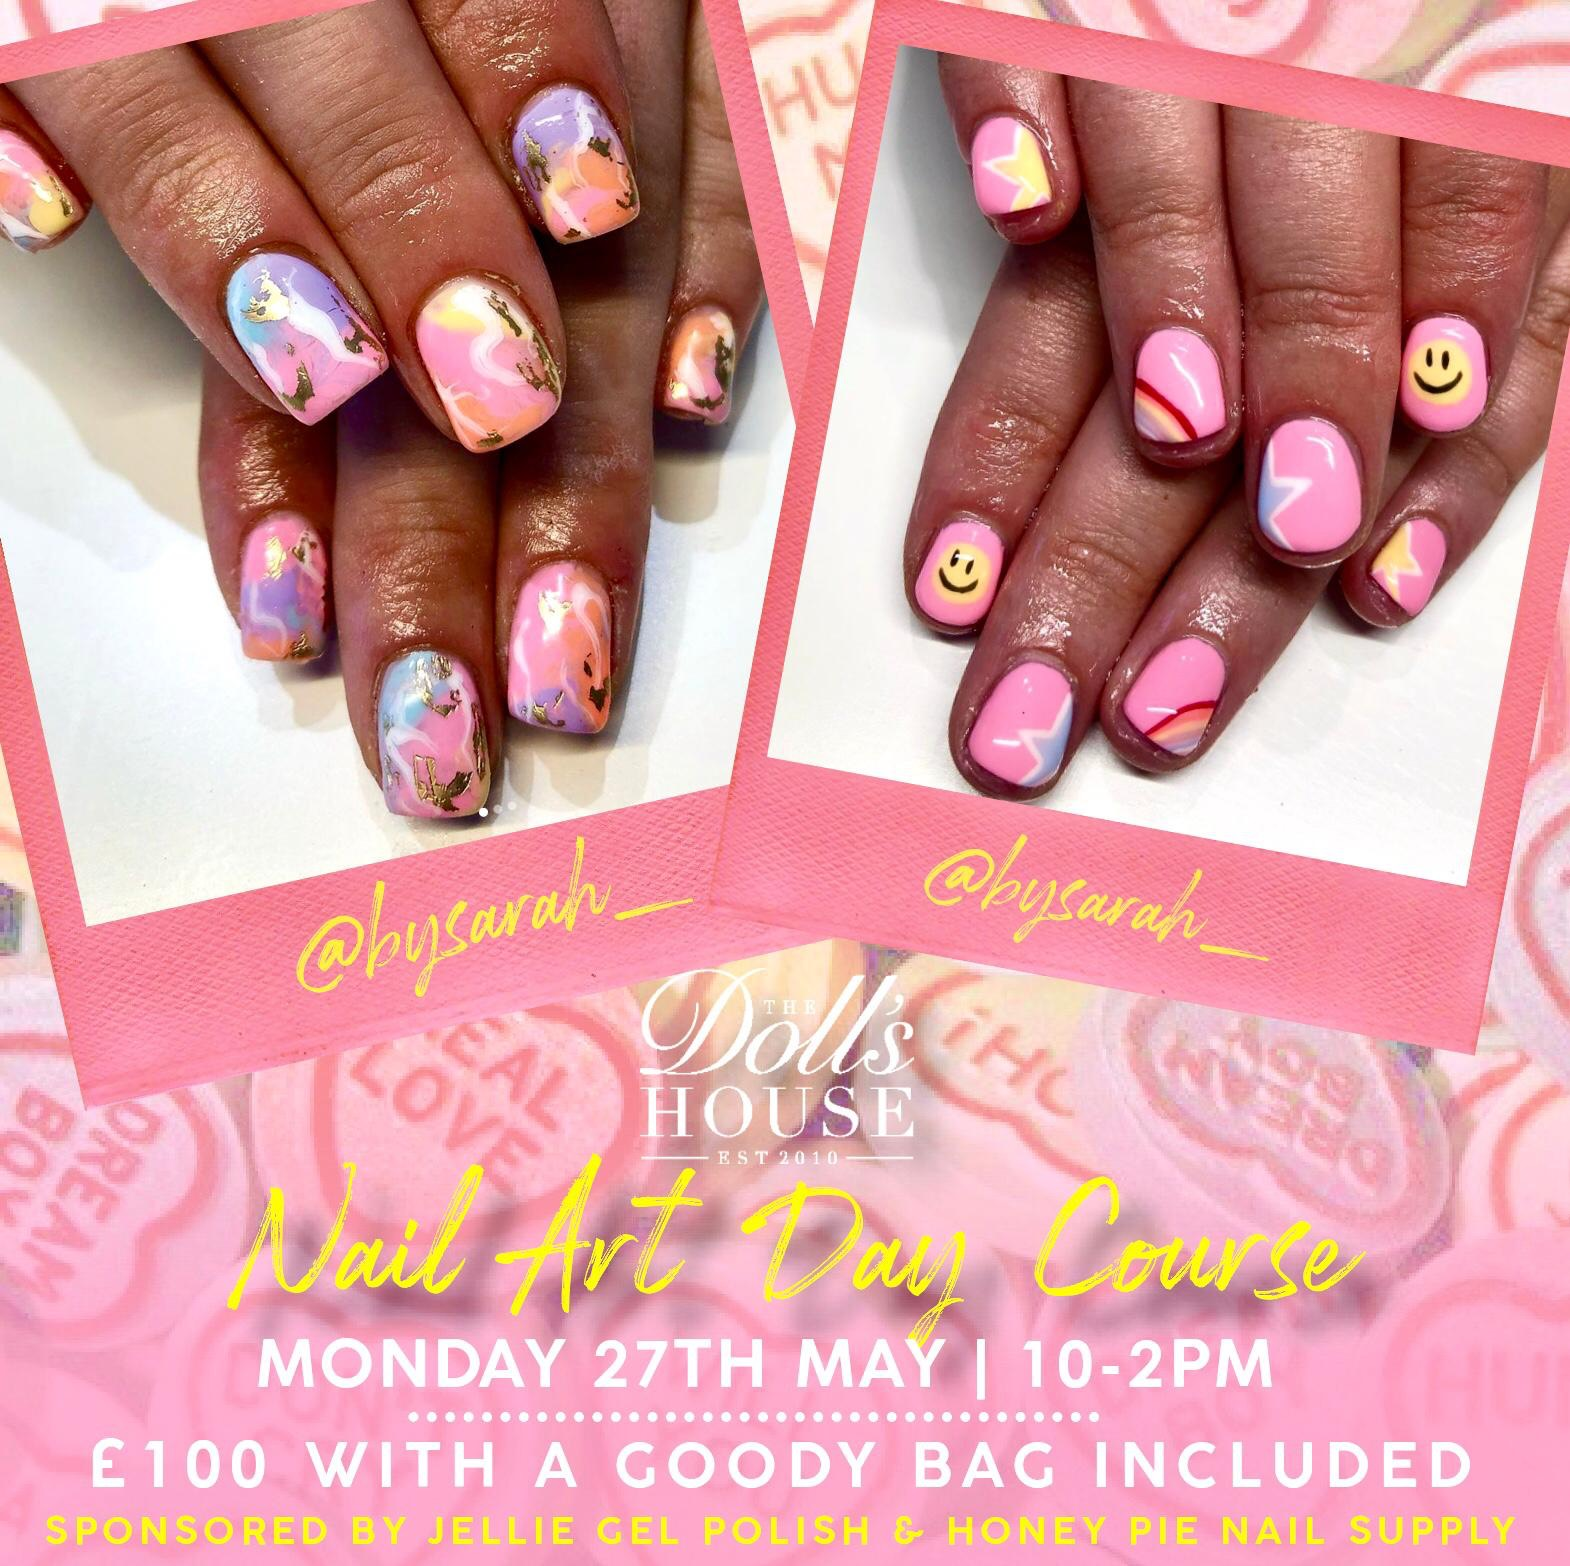 BY SARAH Nail Art Day Course